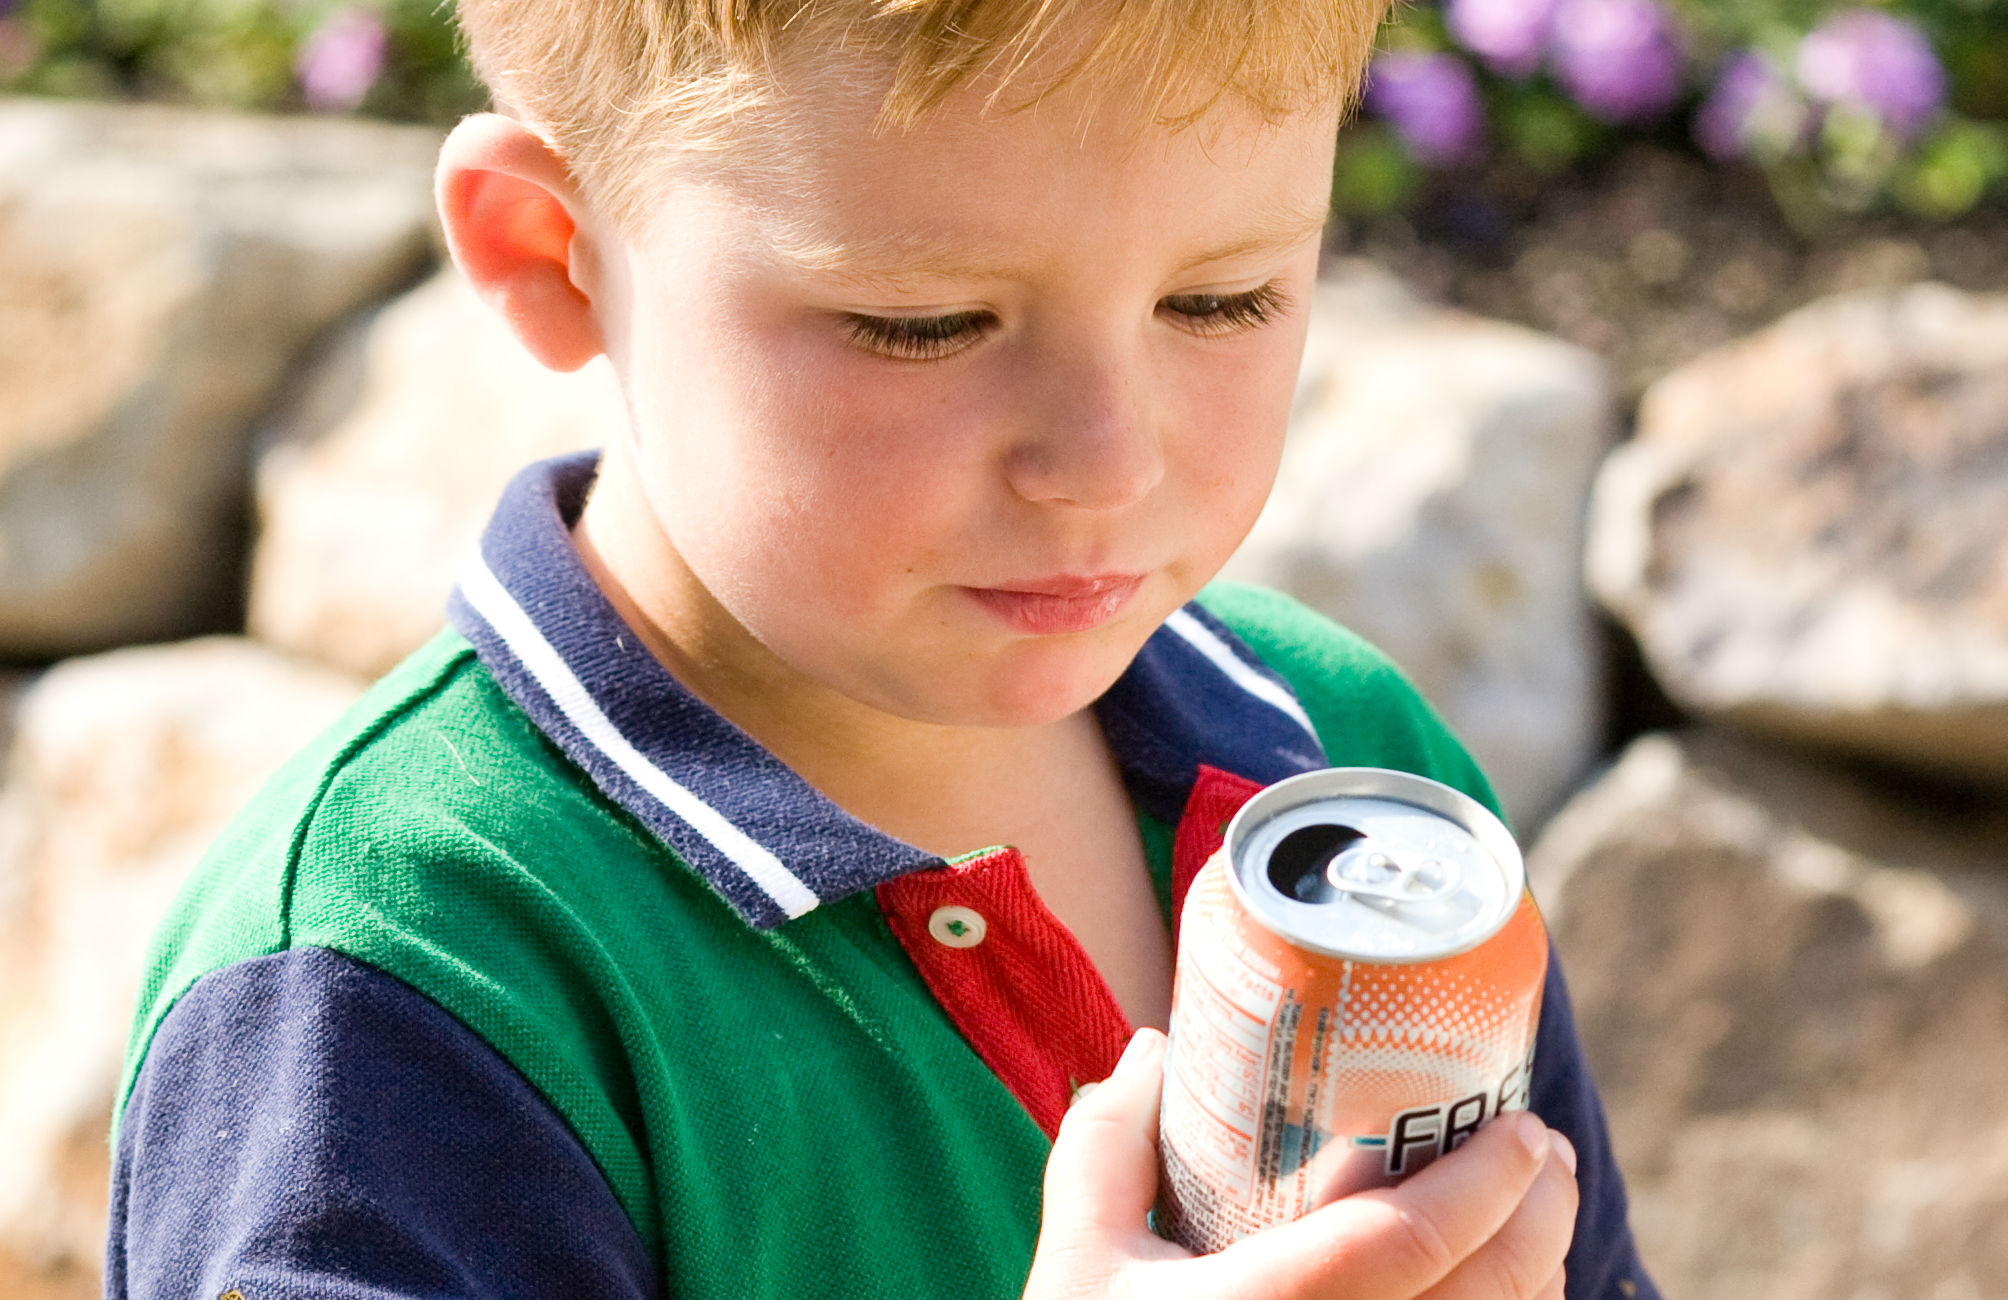 Kids are drinking more soda at home